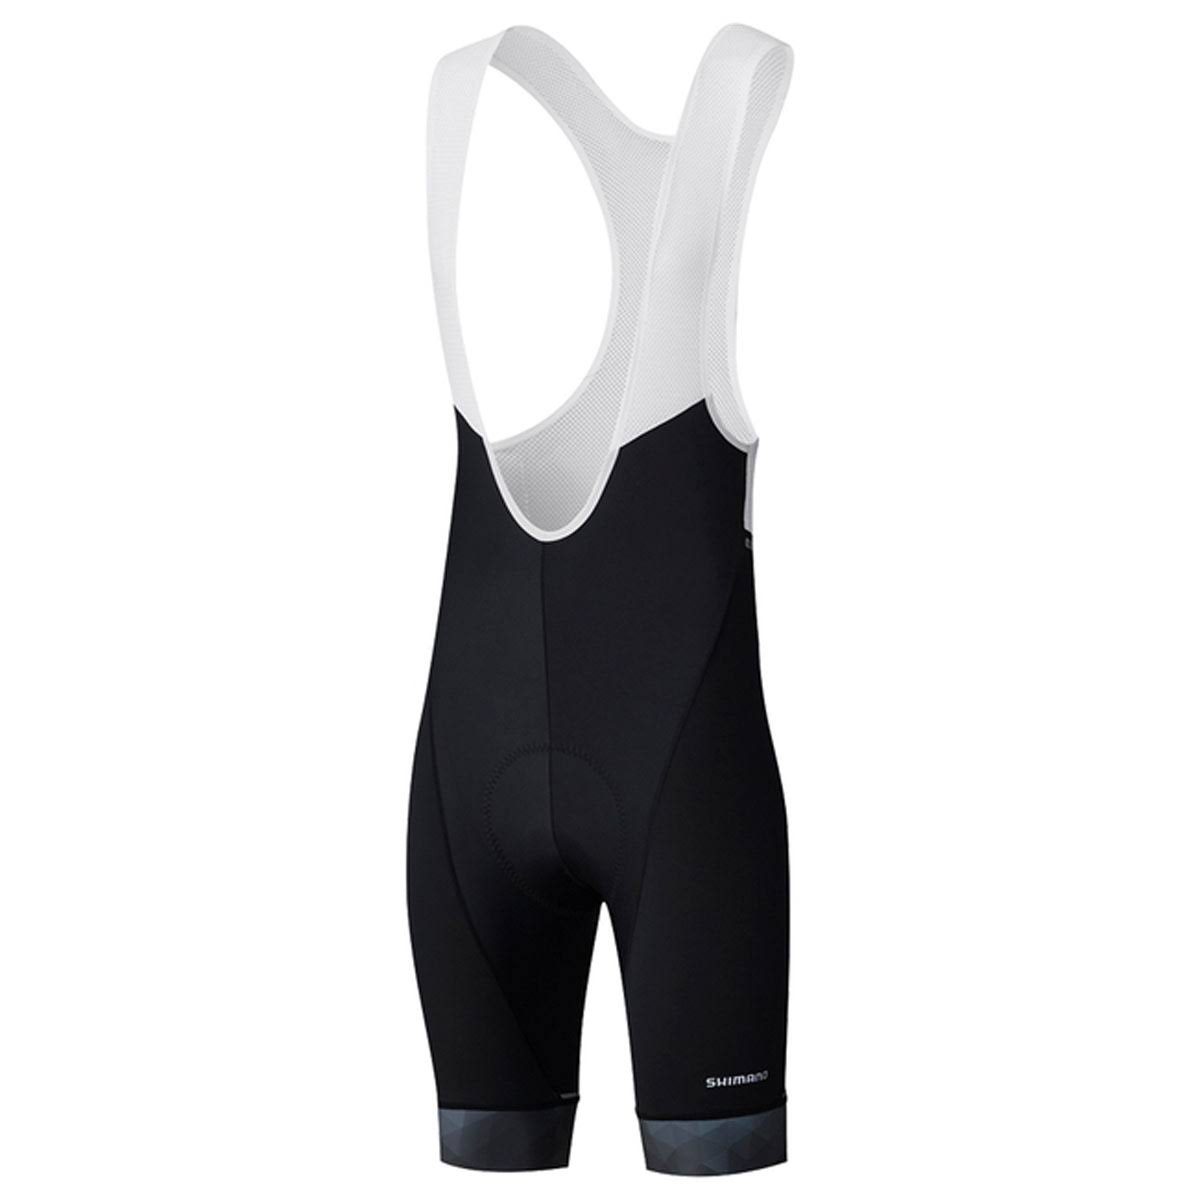 Shimano Men's Breakaway Bib Short - XL - Black